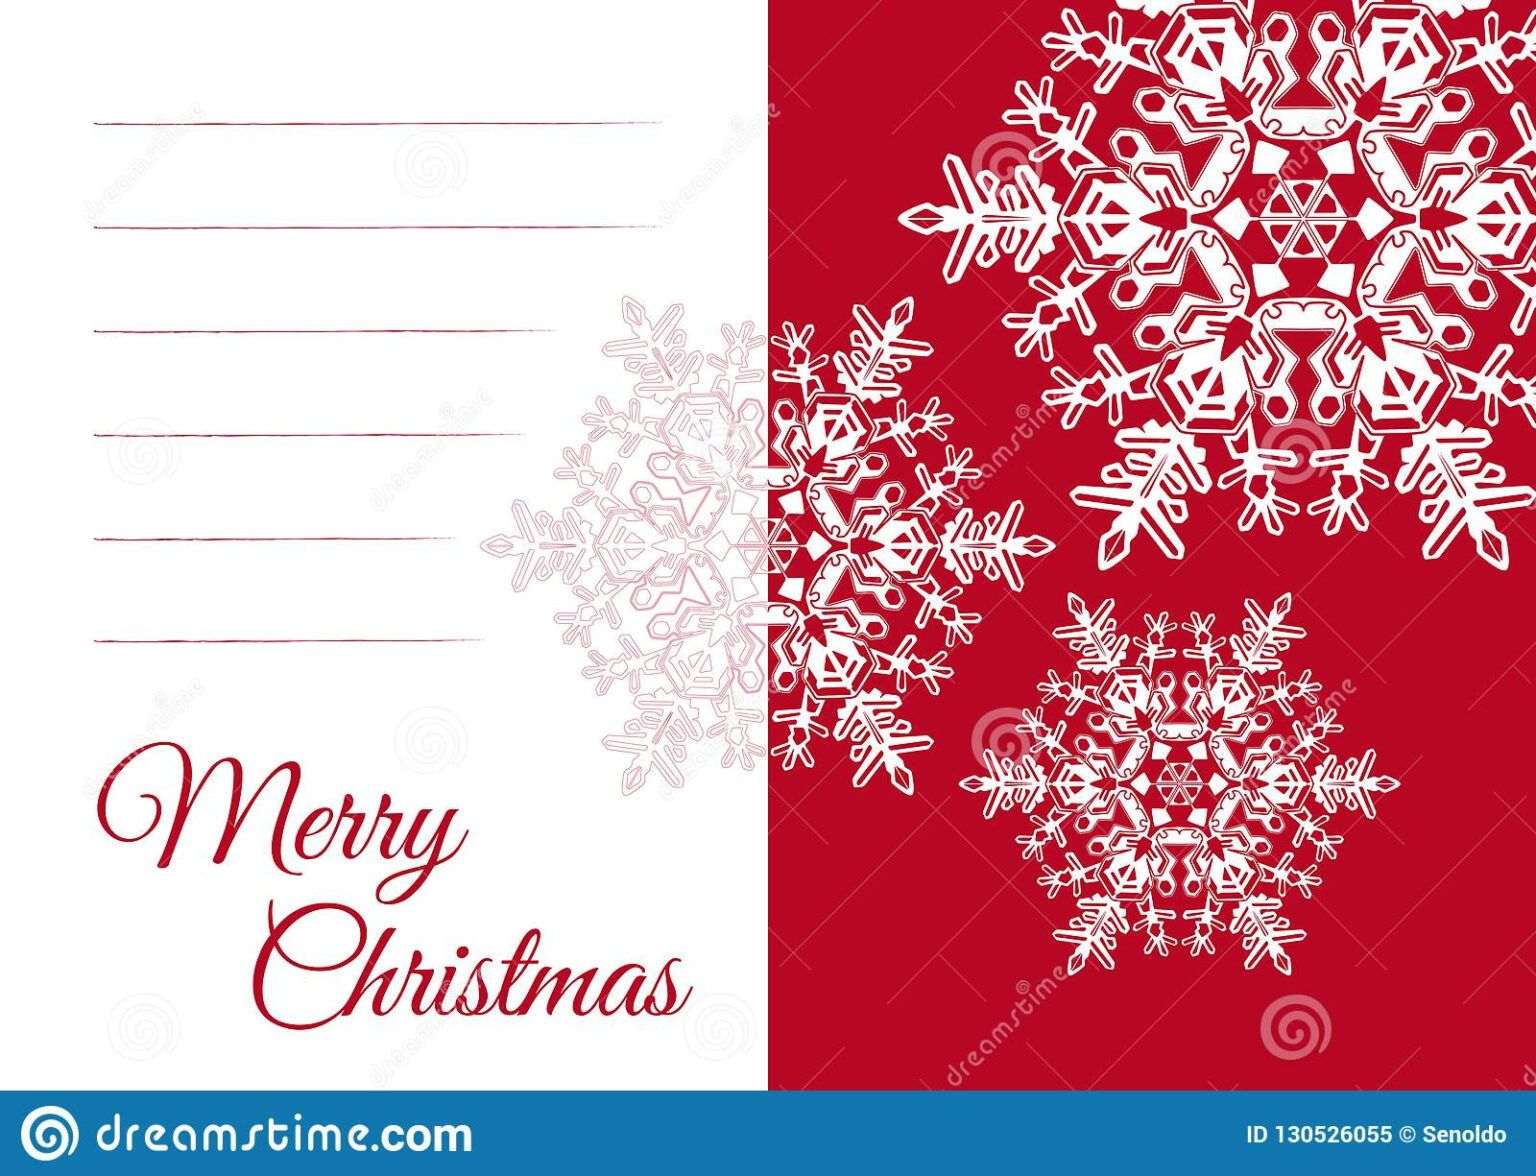 Christmas Greeting Card Template With Blank Text Field Stock For Blank C Christmas Card Templates Free Christmas Greeting Card Template Christmas Card Template